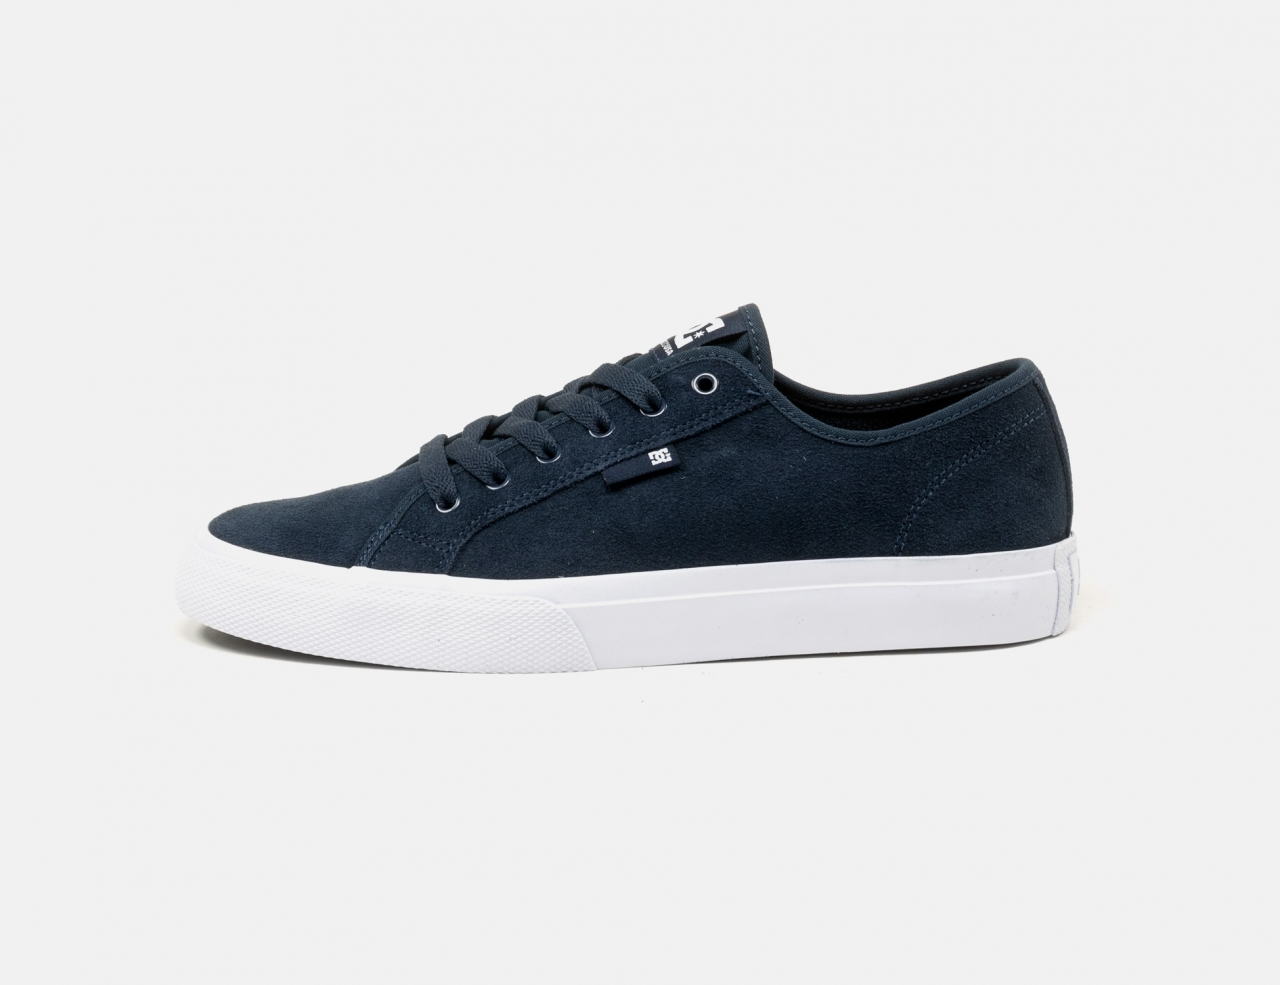 DC Shoes Manual S Sneaker - Navy / White